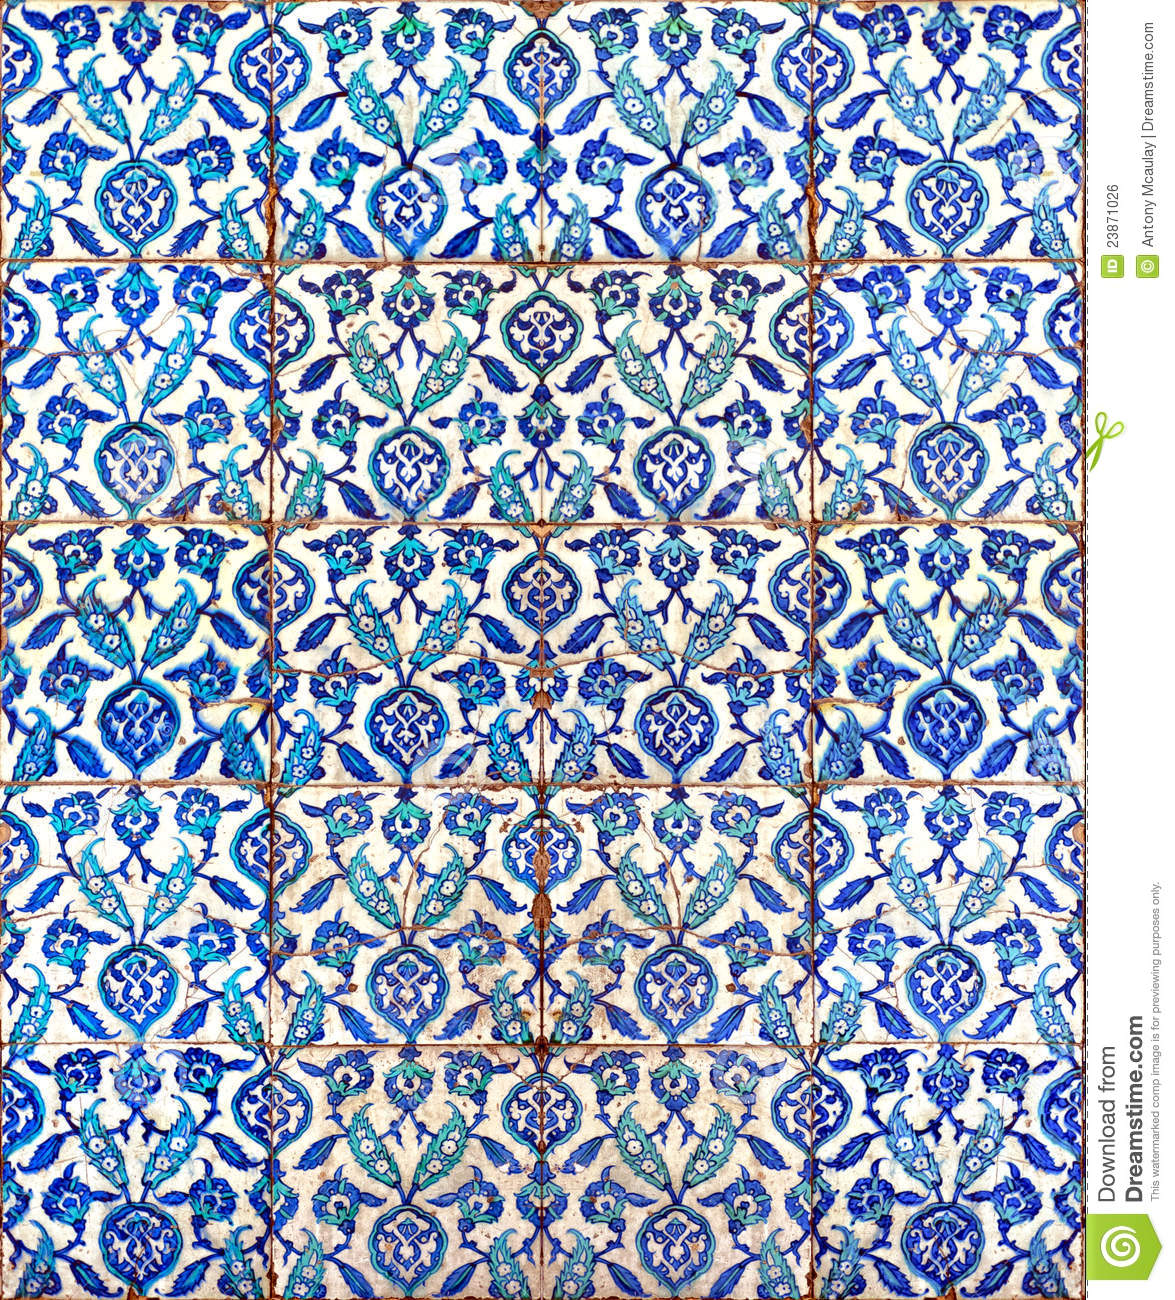 Islamic Tiles 02 Royalty Free Stock Image Image 23871026